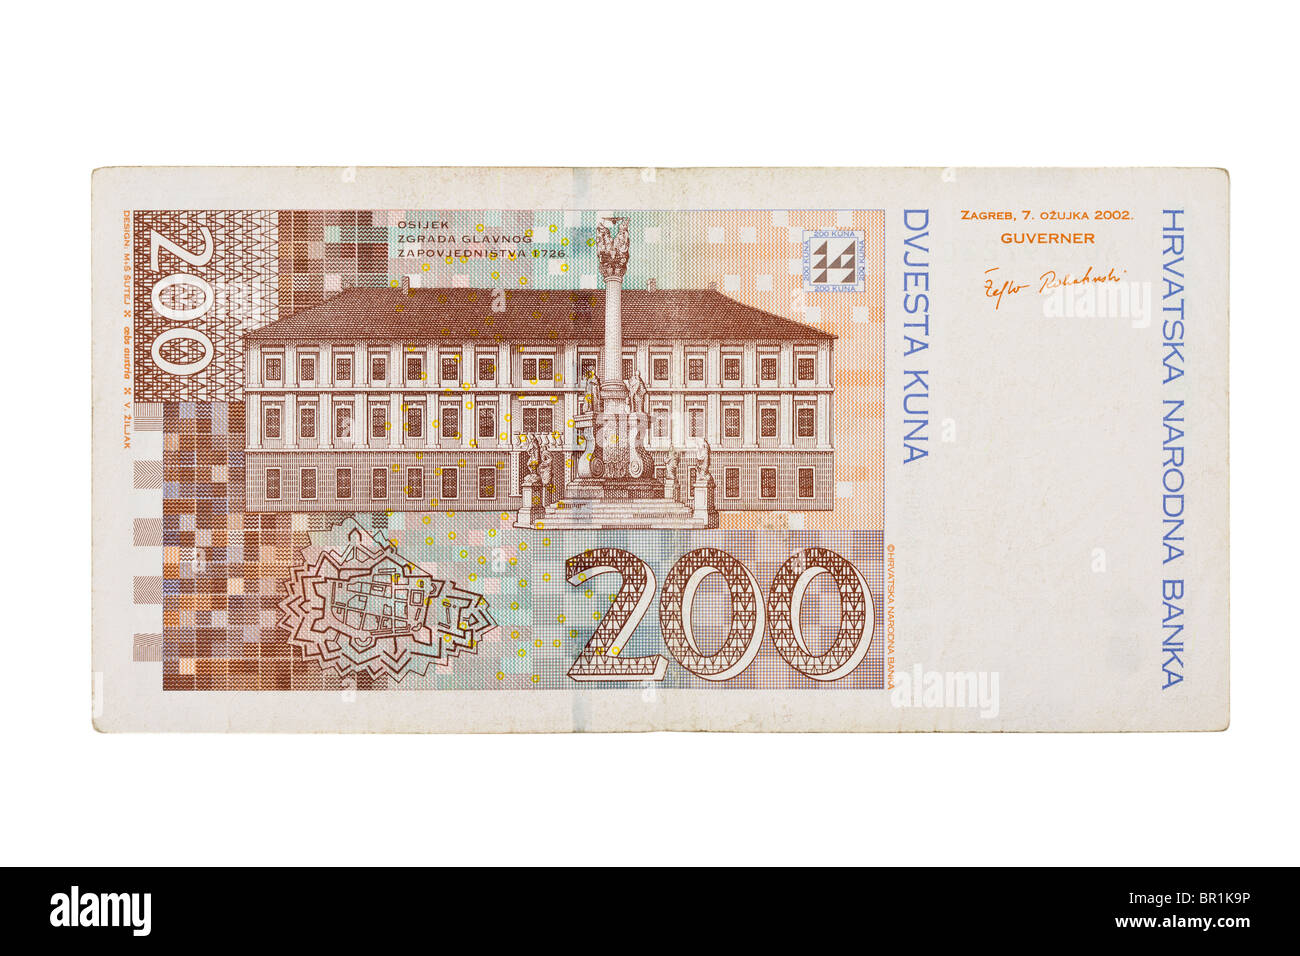 Croatian two hundred kuna bill - Stock Image